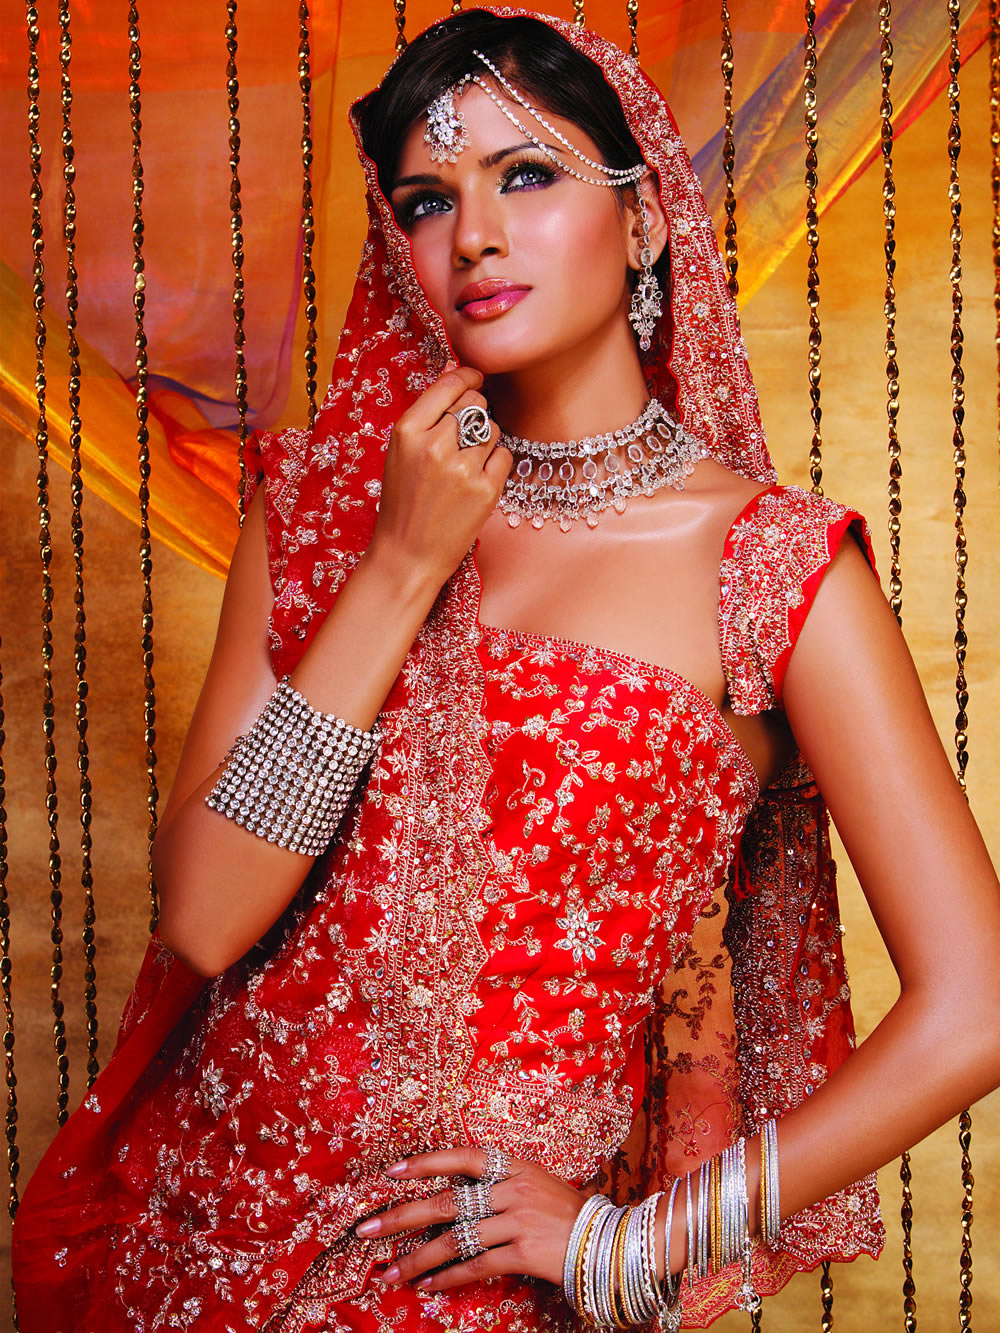 wallpapers  images  picpile best indian bridal wedding